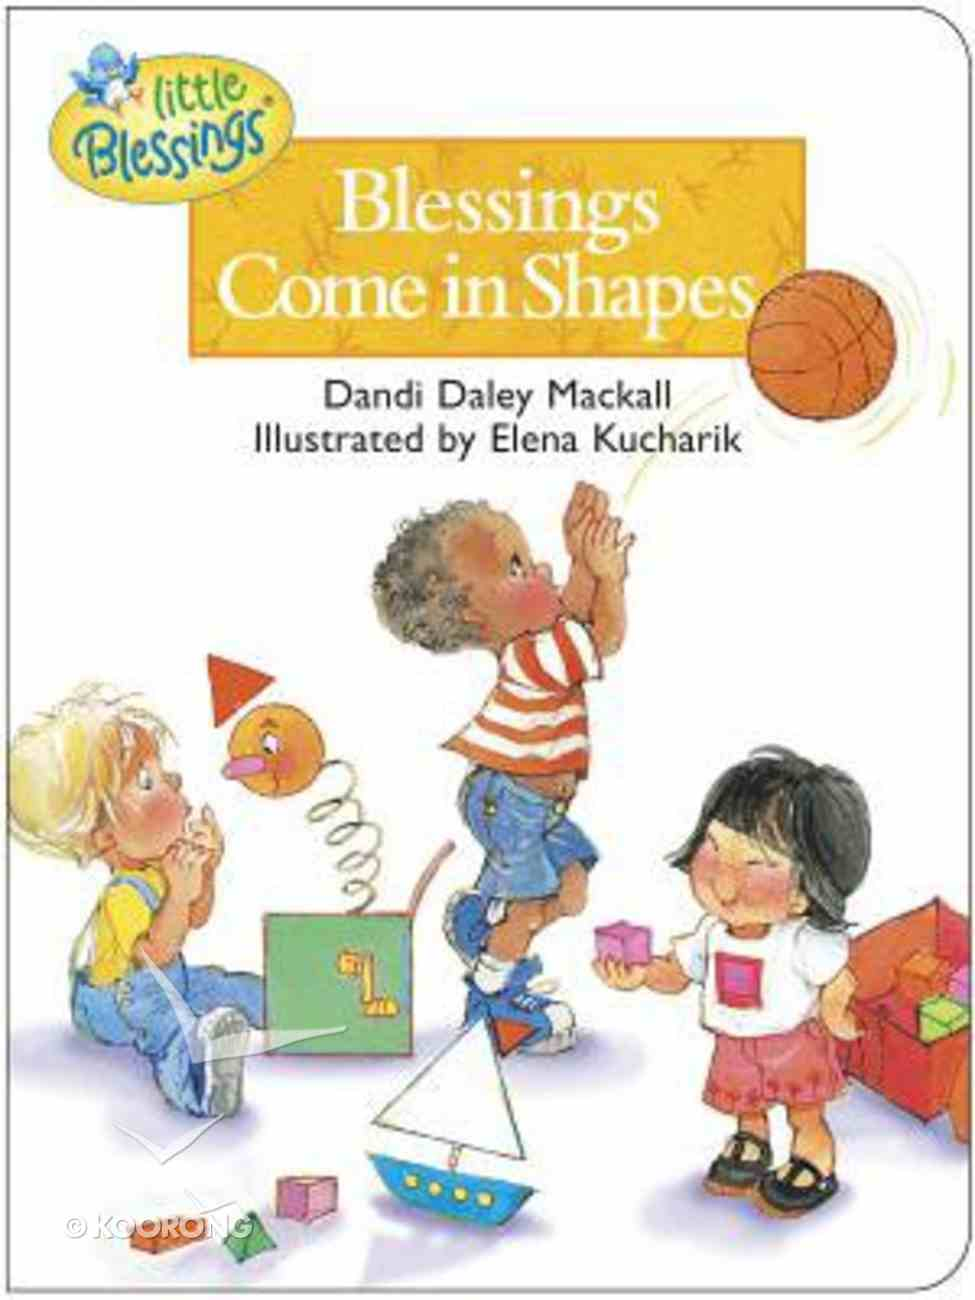 Little Blessings: Blessings Come in Shapes Board Book